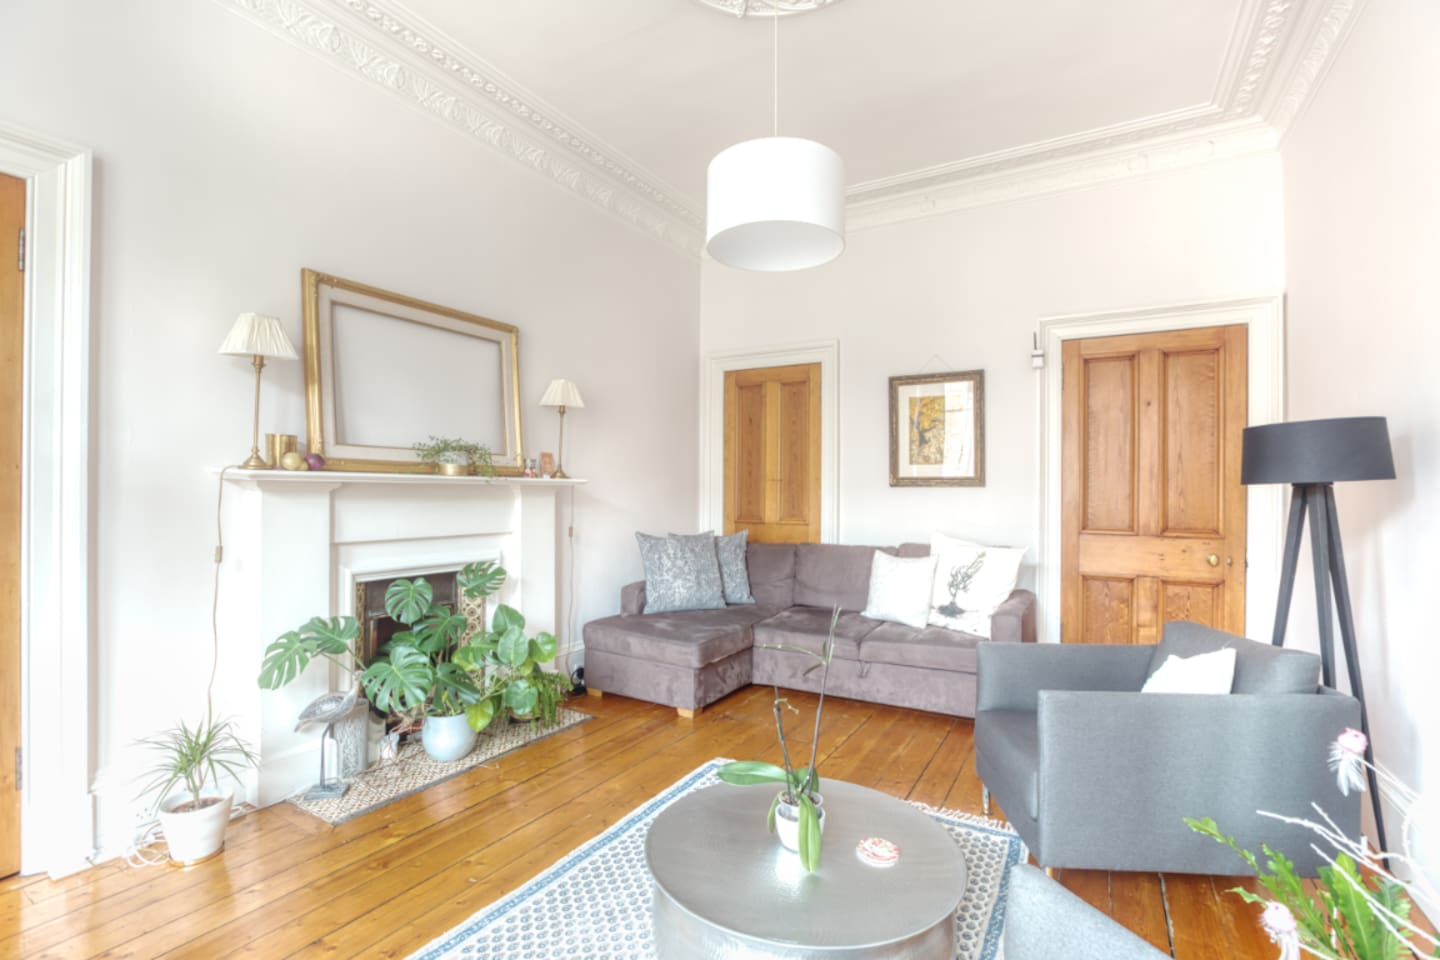 The living room is comfortable and bright and airy